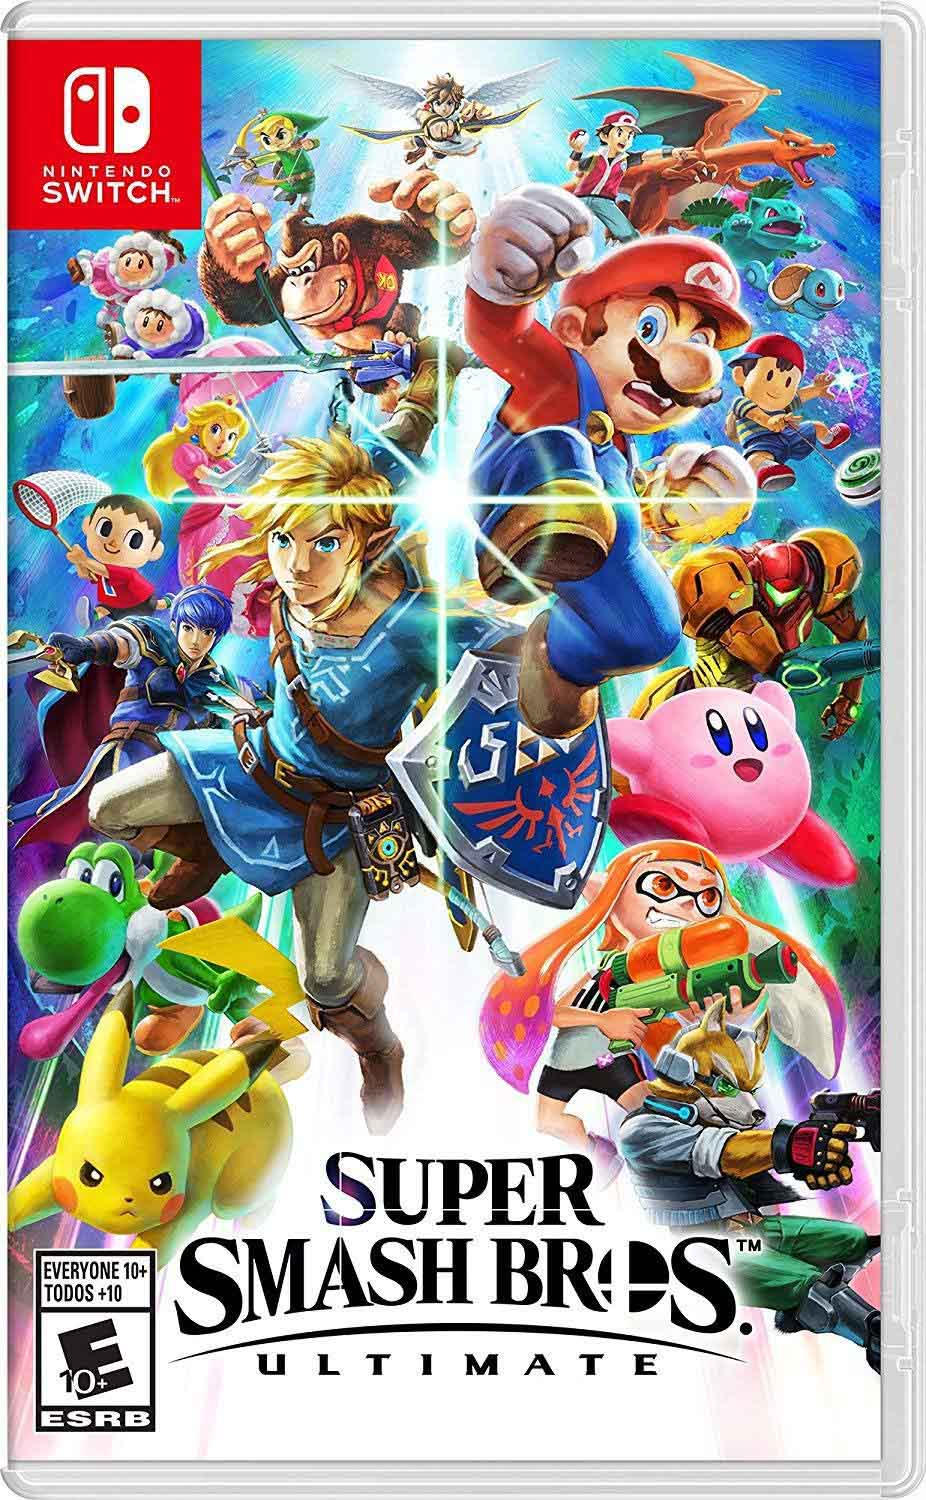 Cover of Super Smash Bros Nintendo Switch game